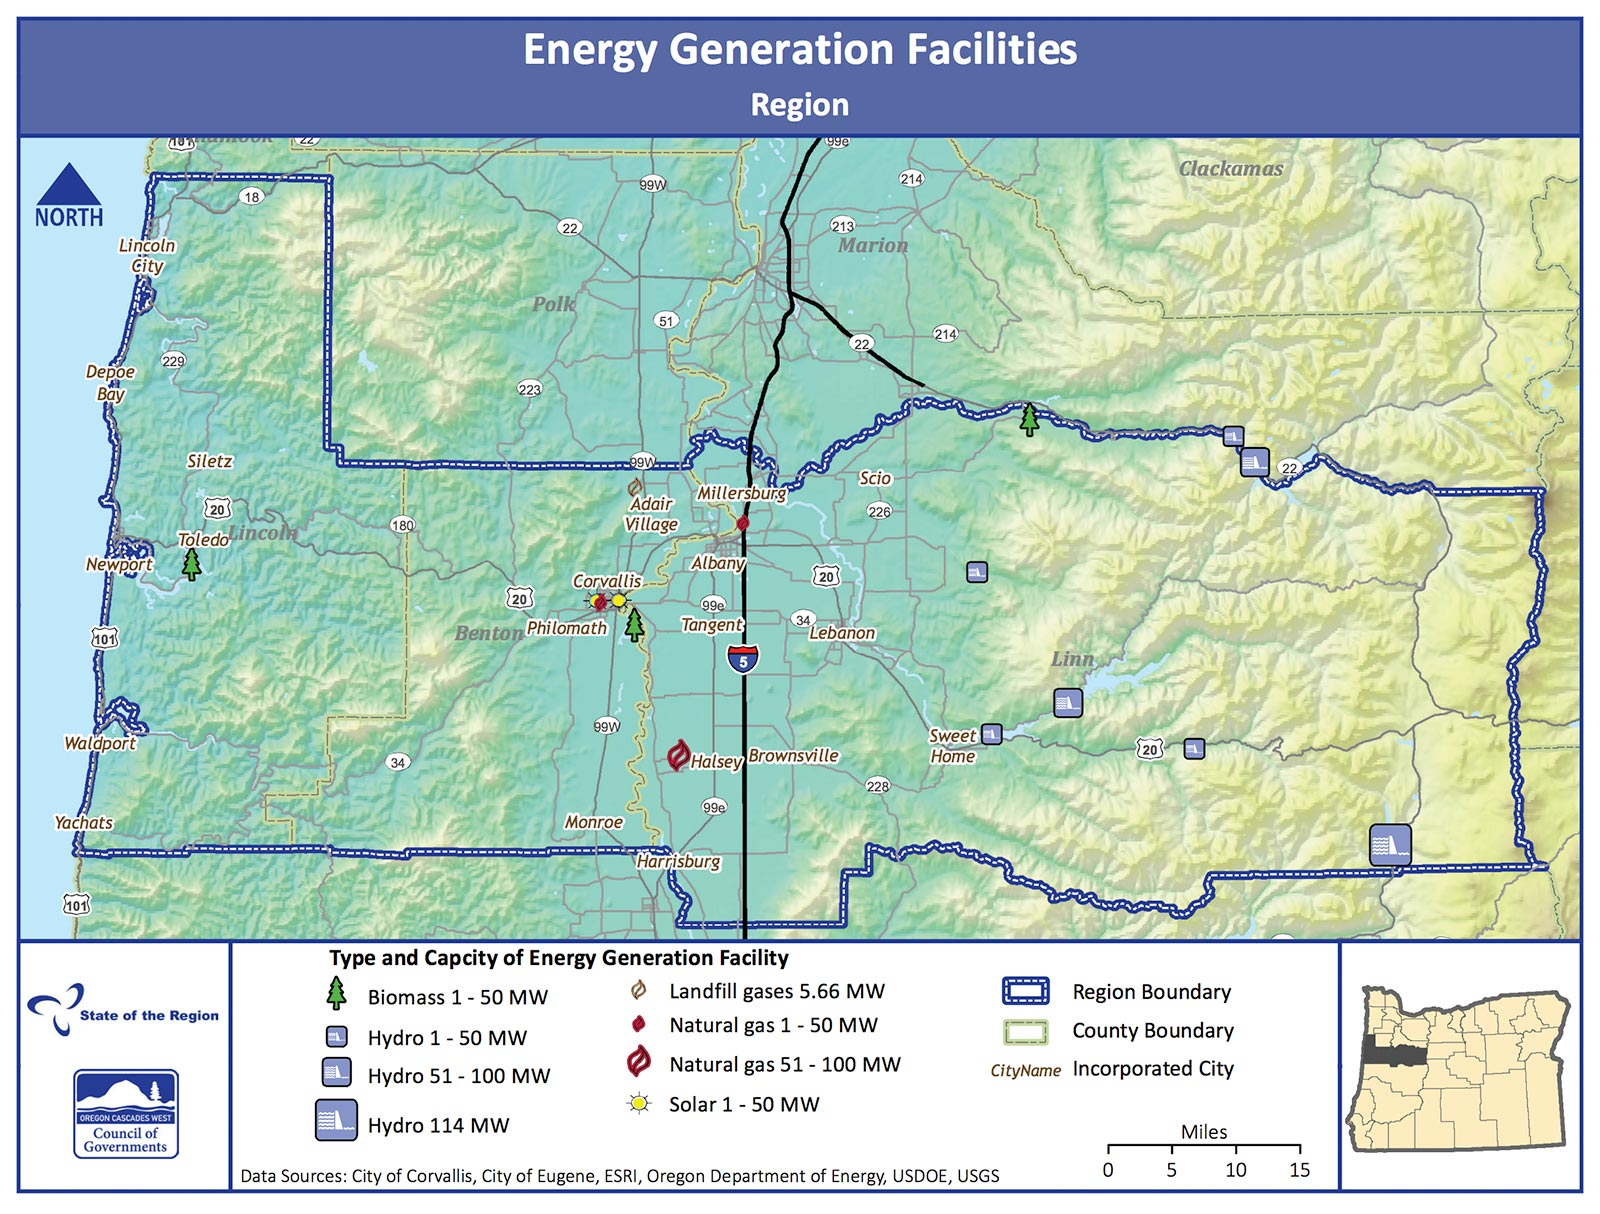 Map of Energy Generation Facilities in the Region